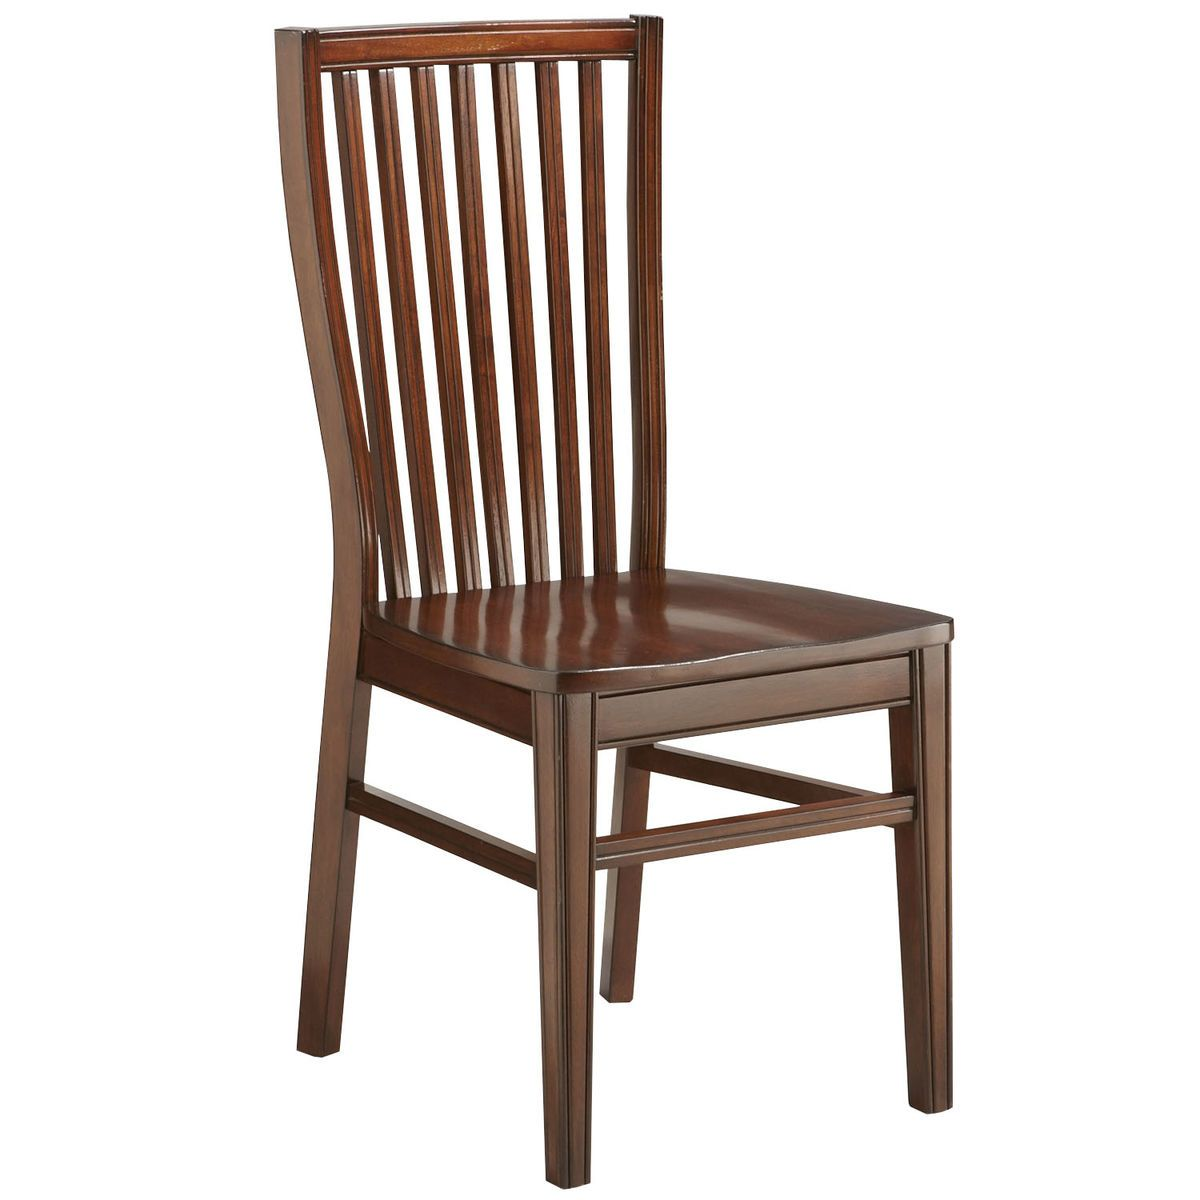 Perfect Ronan Dining Chair   Tobacco Brown | Pier 1 Imports